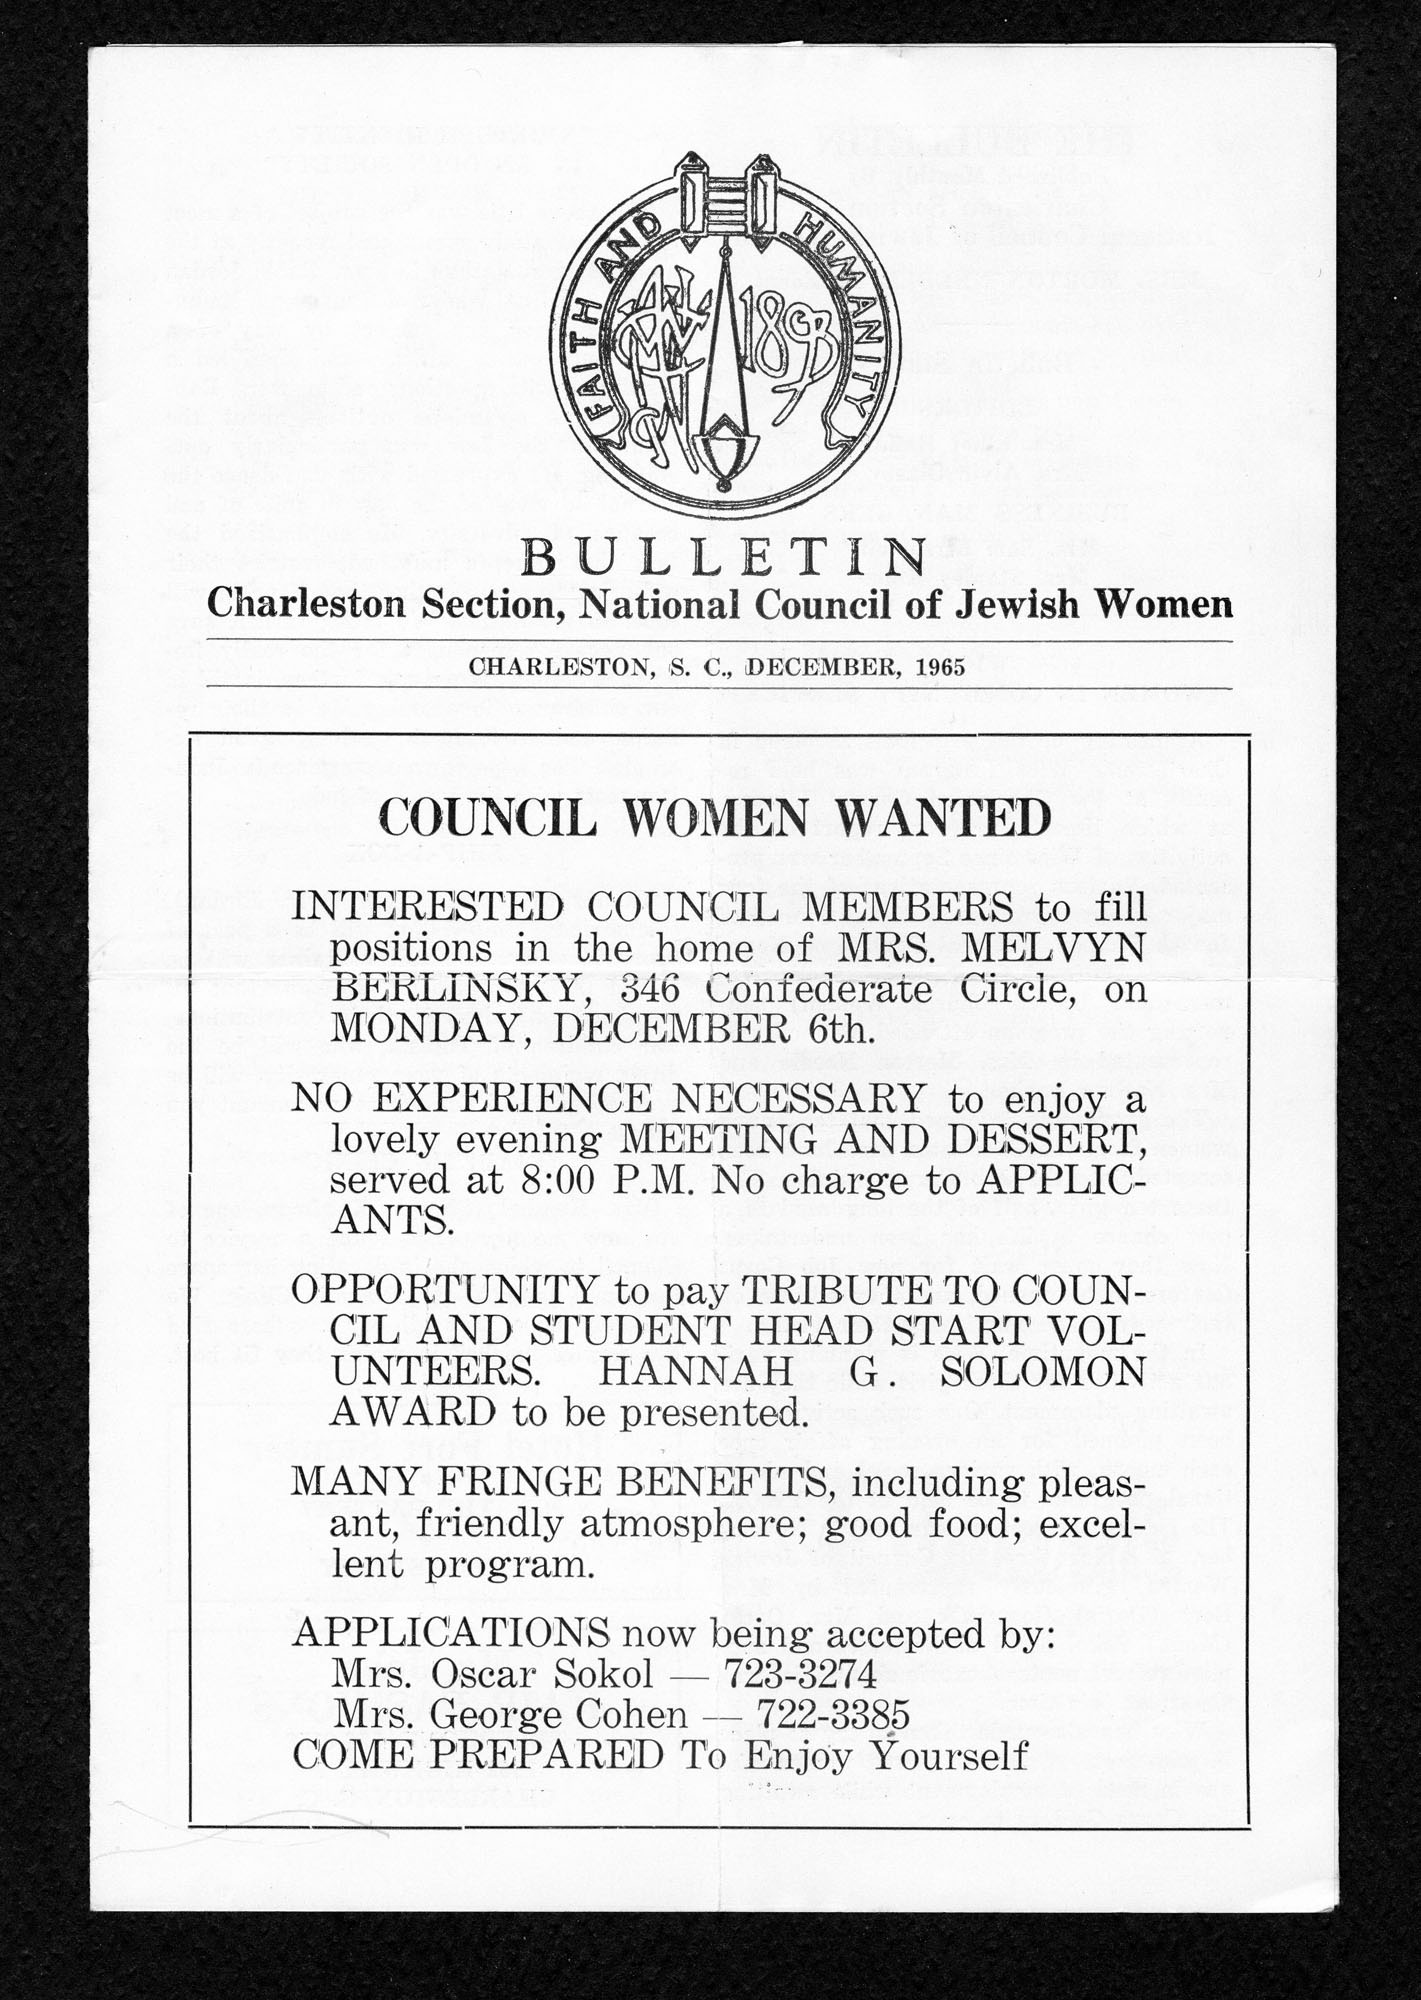 Bulletin from the Charleston section of the National Council of Jewish Women, page 1